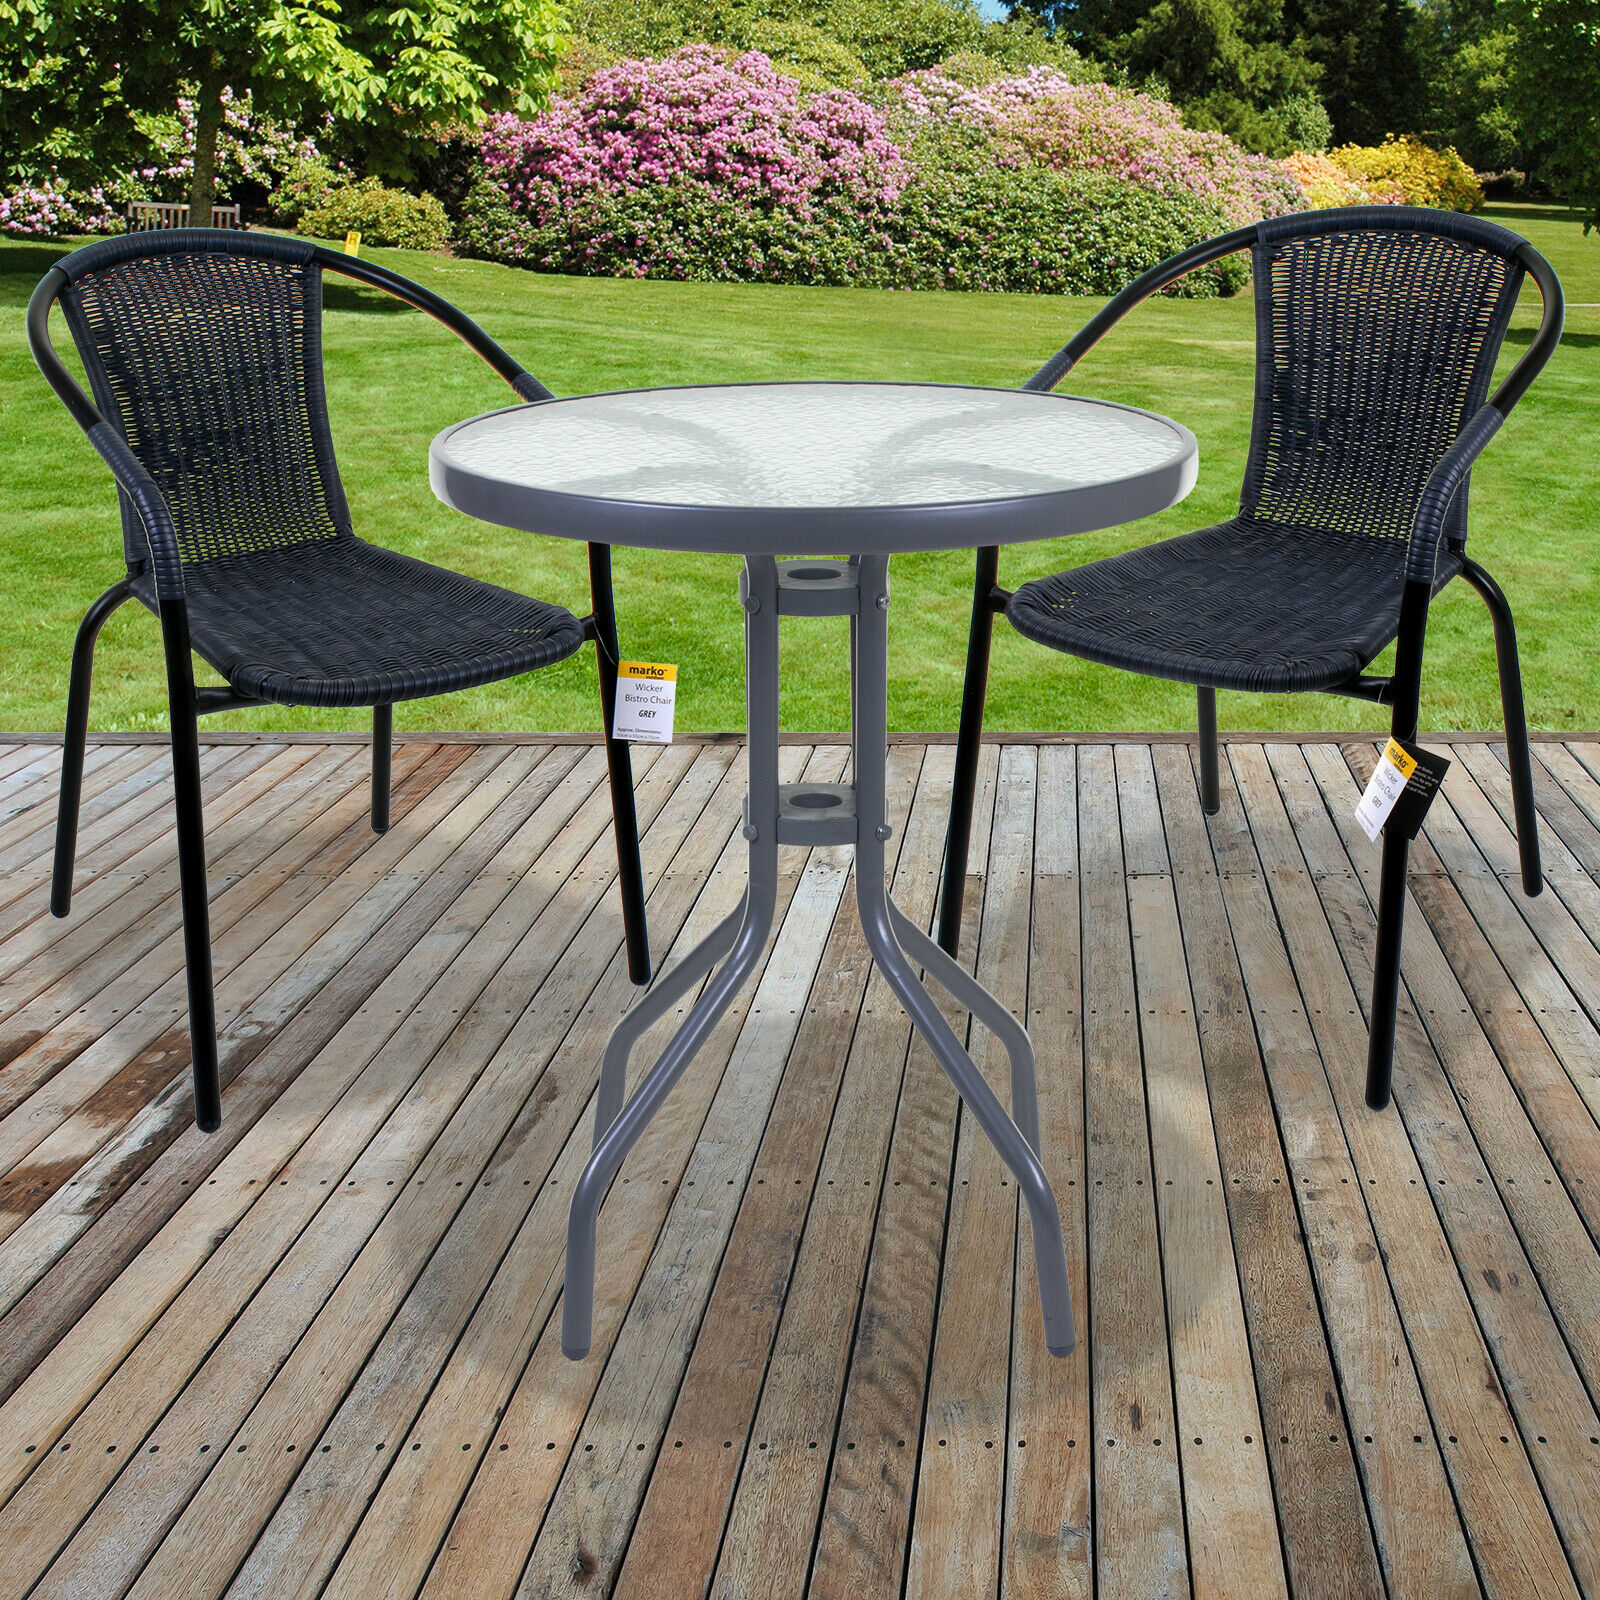 BISTRO SET GREY WICKER CHAIRS ROUND GLASS TABLE RATTAN SEAT OUTDOOR GARDEN  PATIO